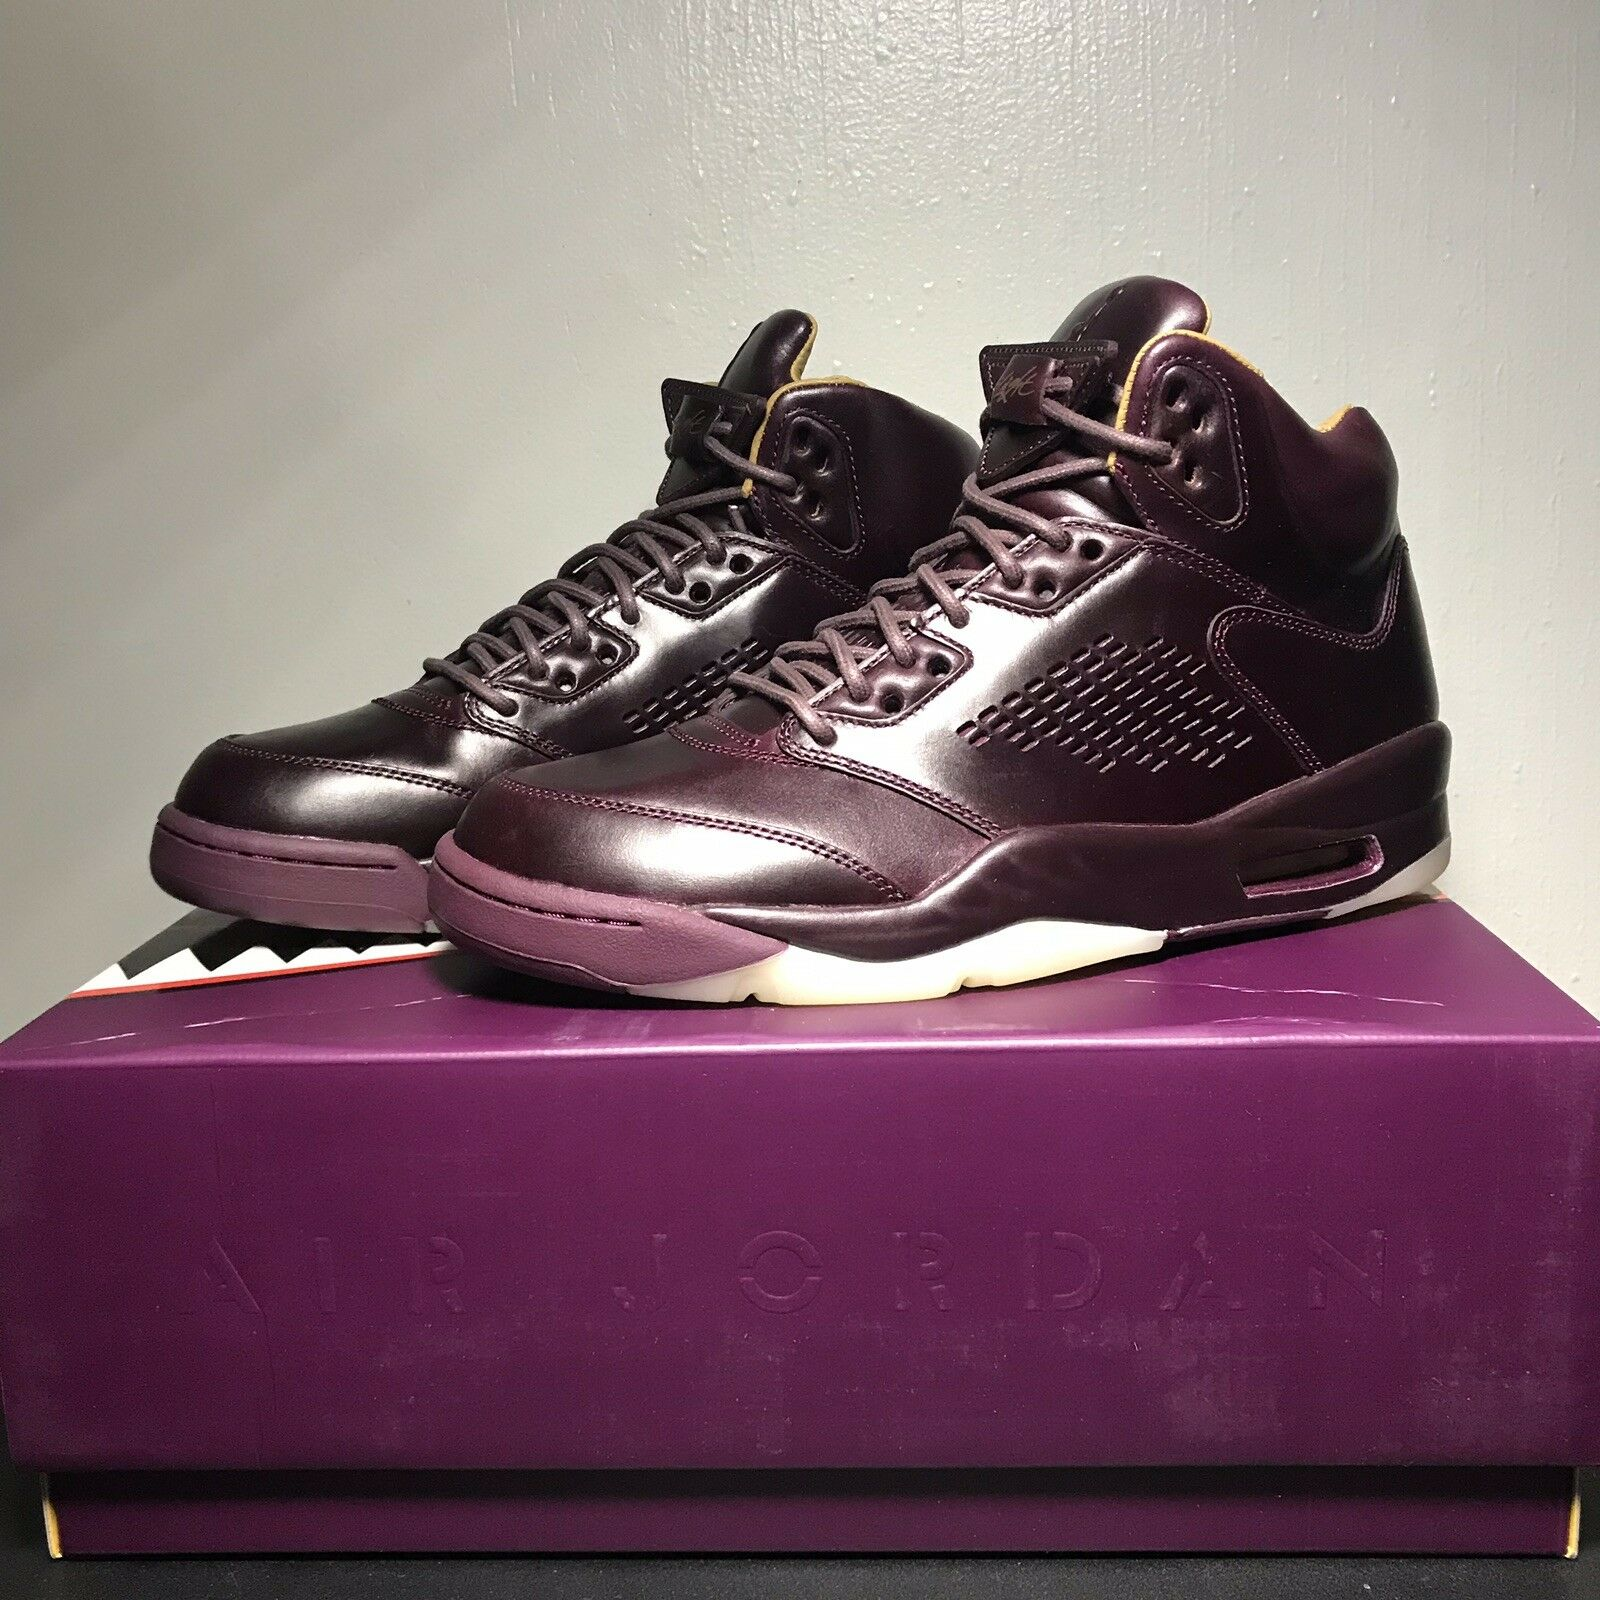 Air Jordan 5 Retro Premium - SIZE 9.5- 881432-612 Wine Maroon Burgundy Bordeaux